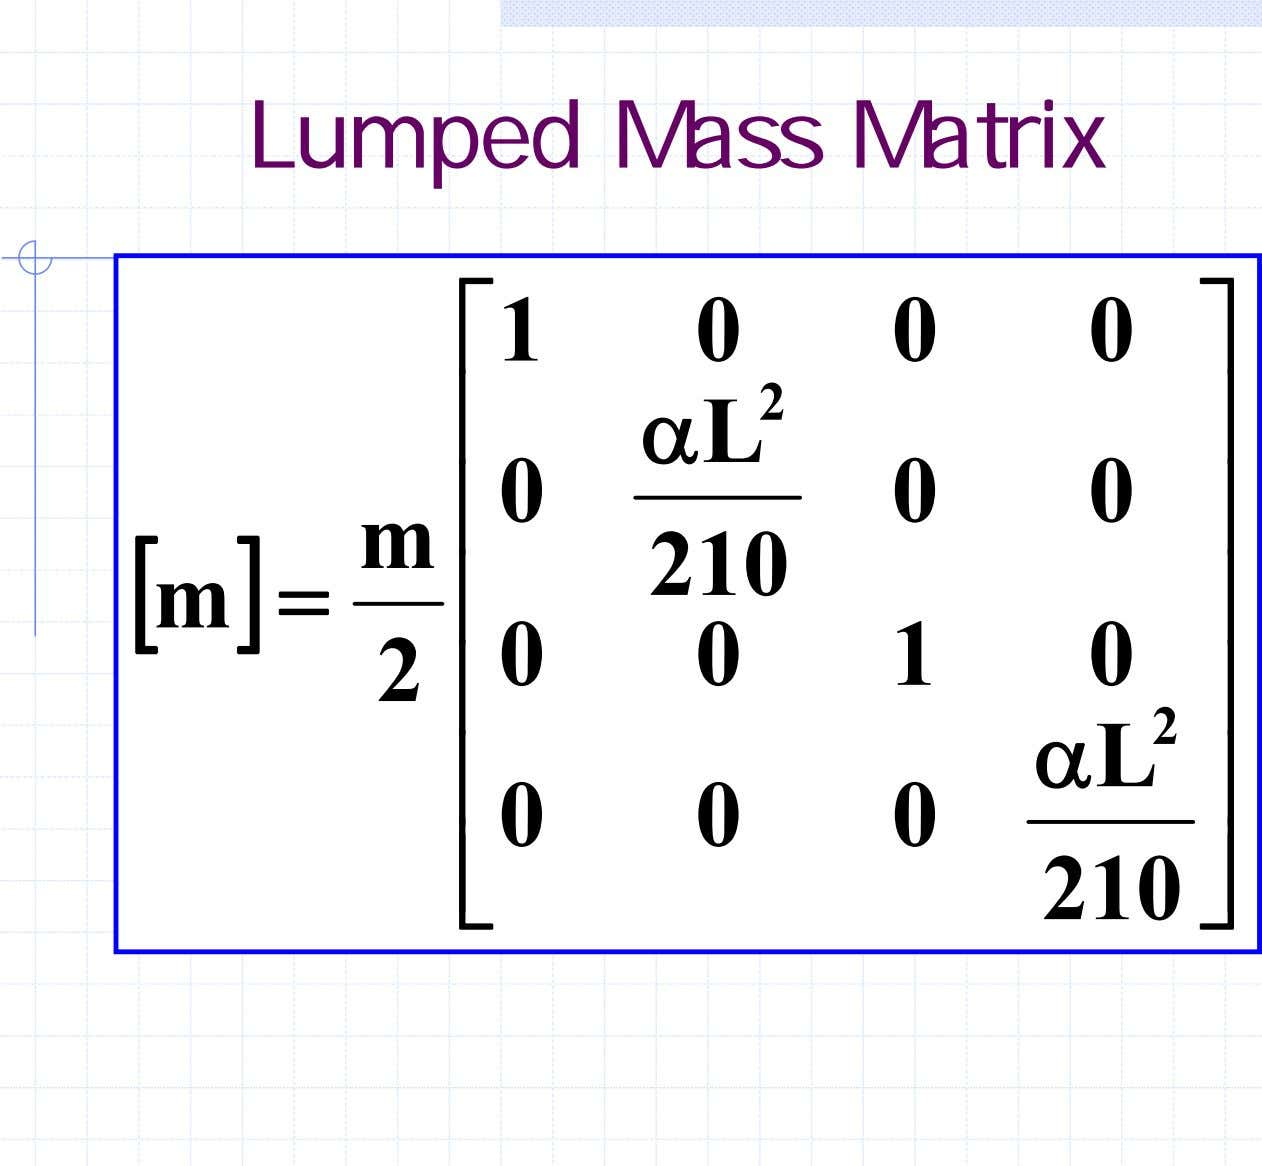 Lumped Mass Matrix ⎡ 1 0 0 0 ⎤ 2 ⎢ α L ⎥ 0